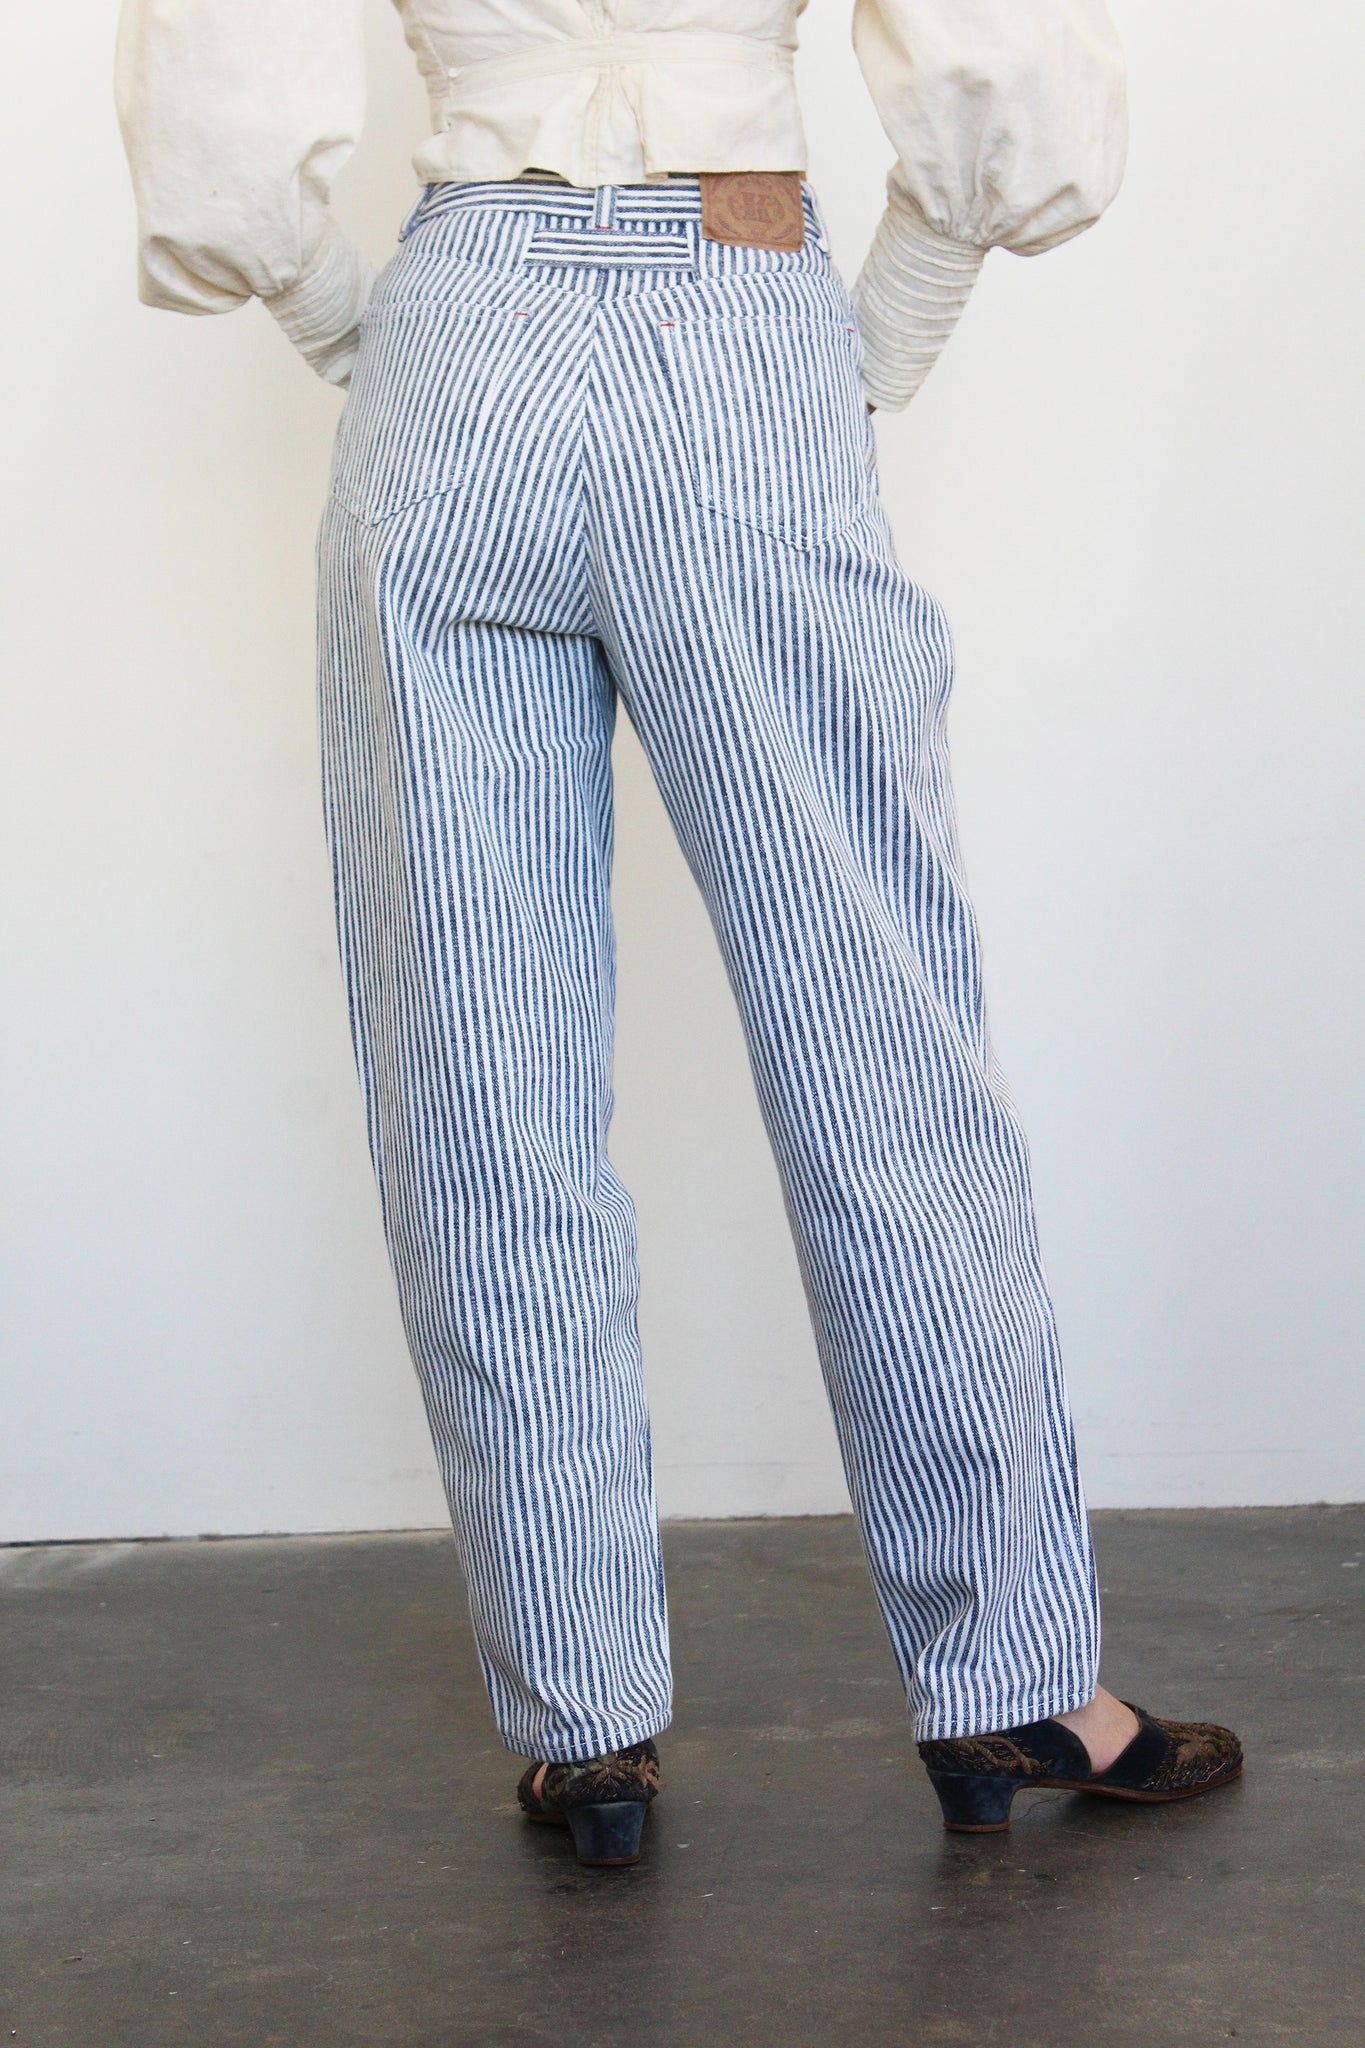 1980's Tromping Jeans